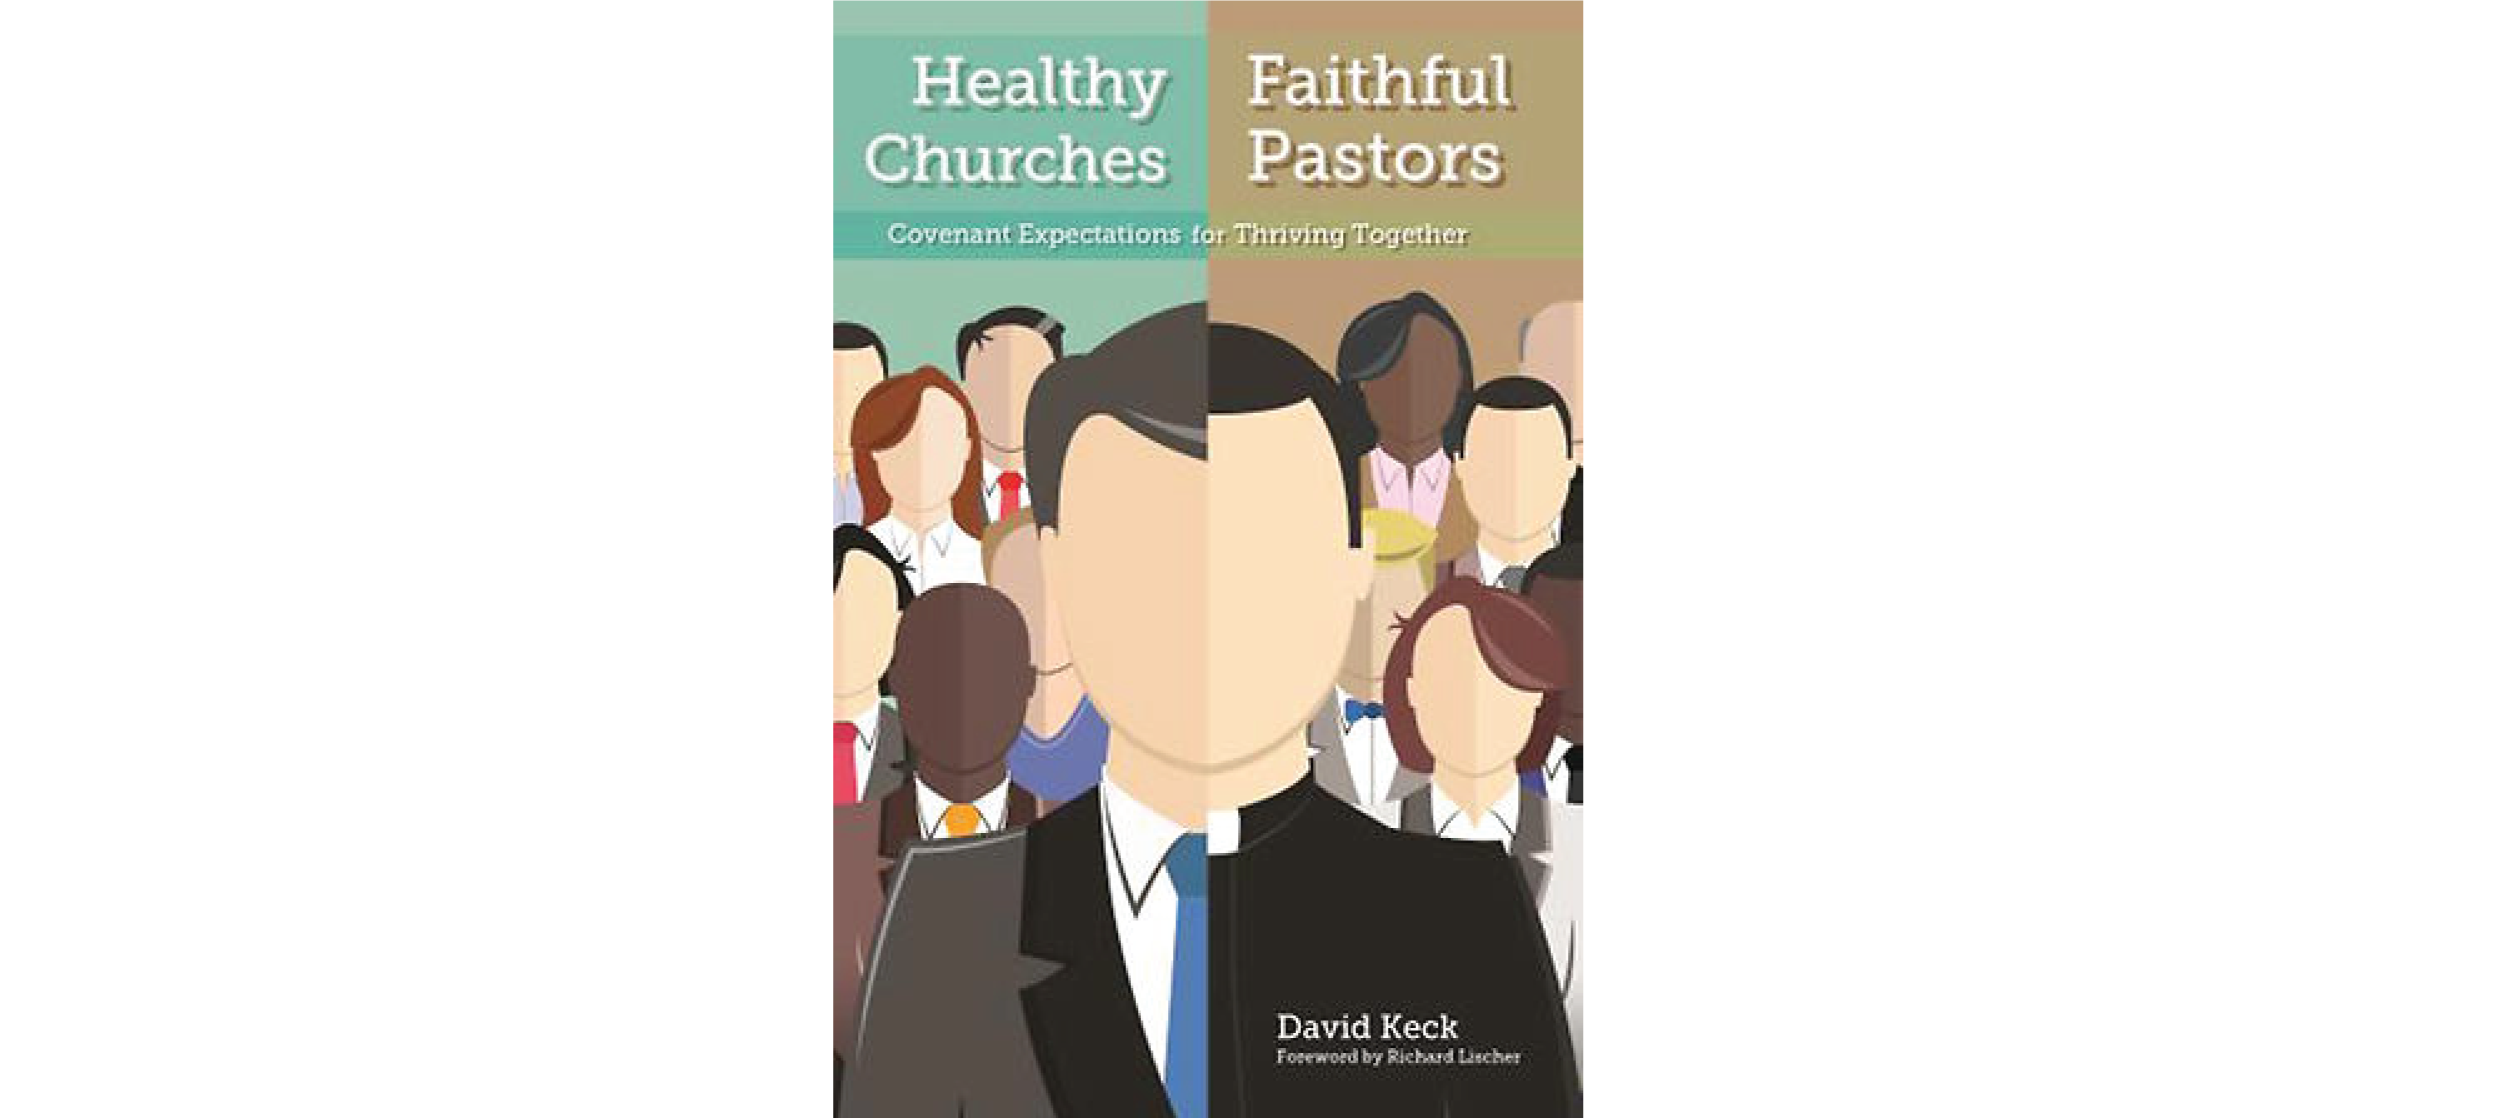 Healthy Churches, Faithful Pastors: Covenant Expectations for Thriving Together by David Keck